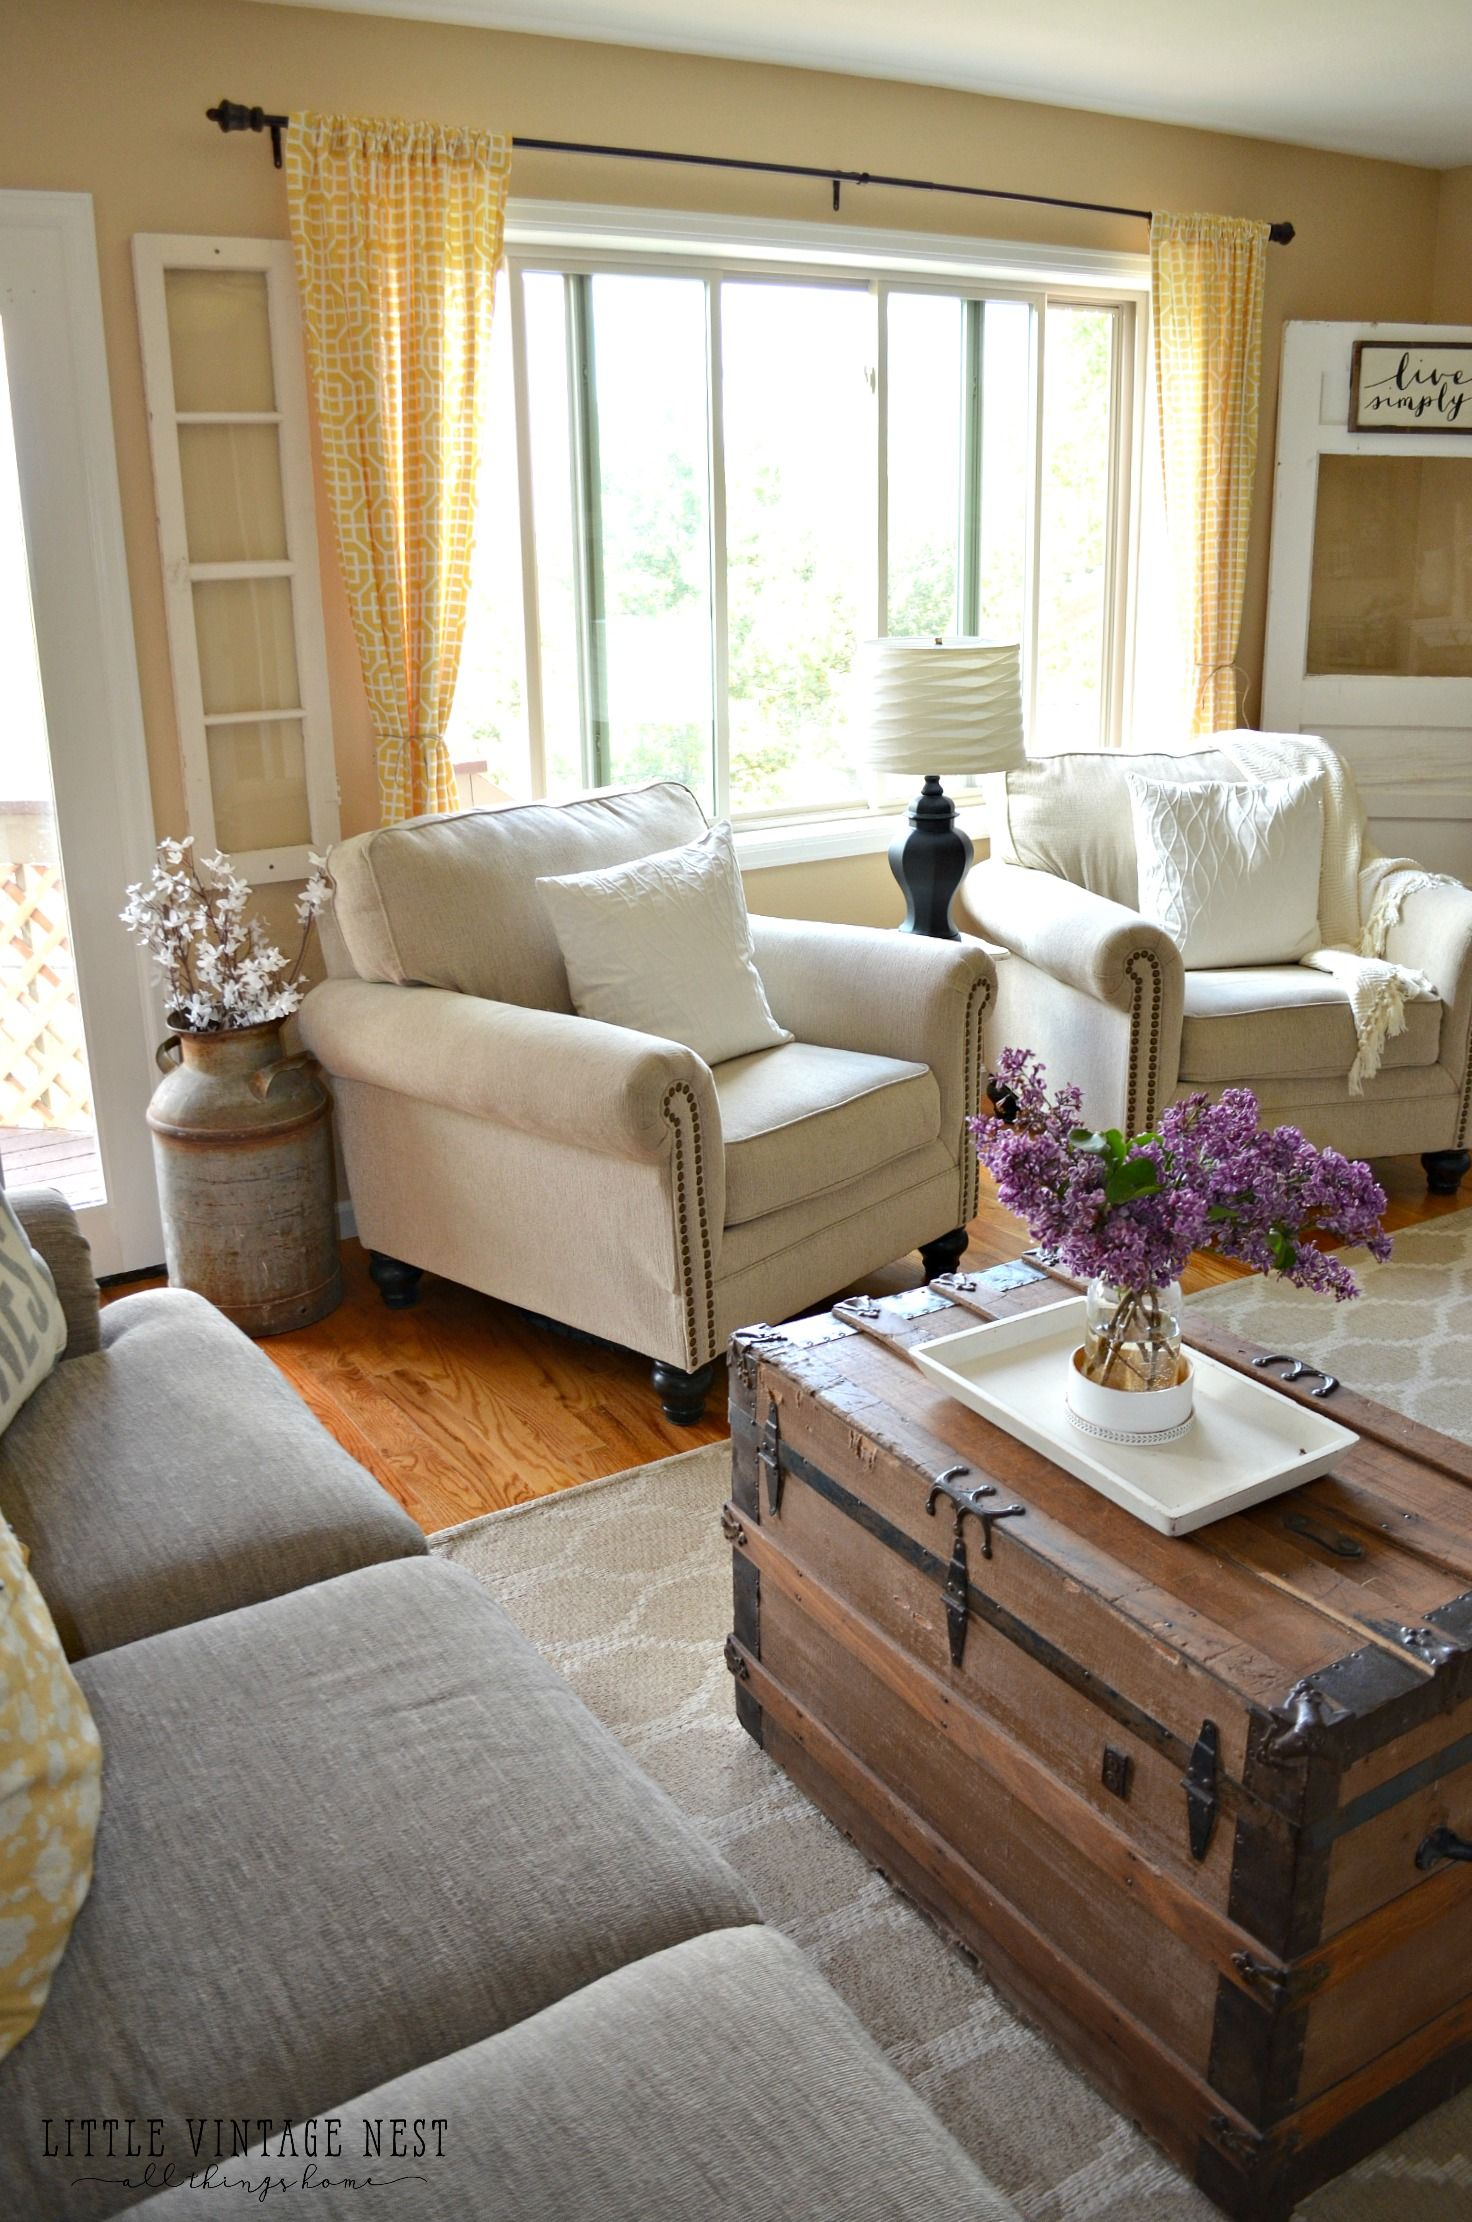 Modern farmhouse home tour farmhouse style room and for New style living room